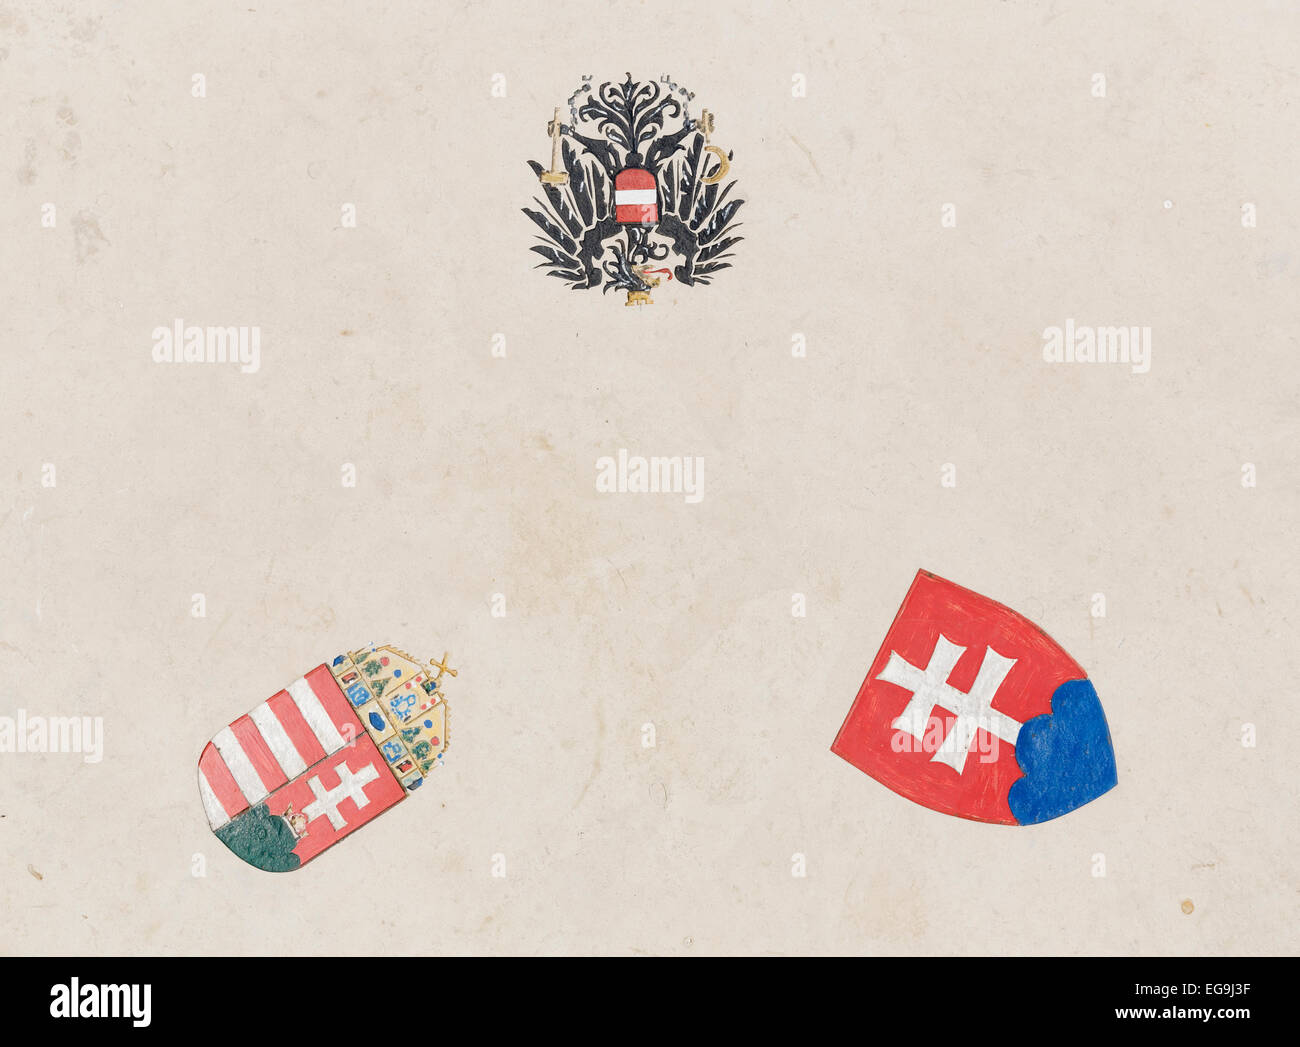 Three coats of arms of countries in the border triangle of Austria - Hungary - Slovakia, Northern Burgenland, Burgenland - Stock Image